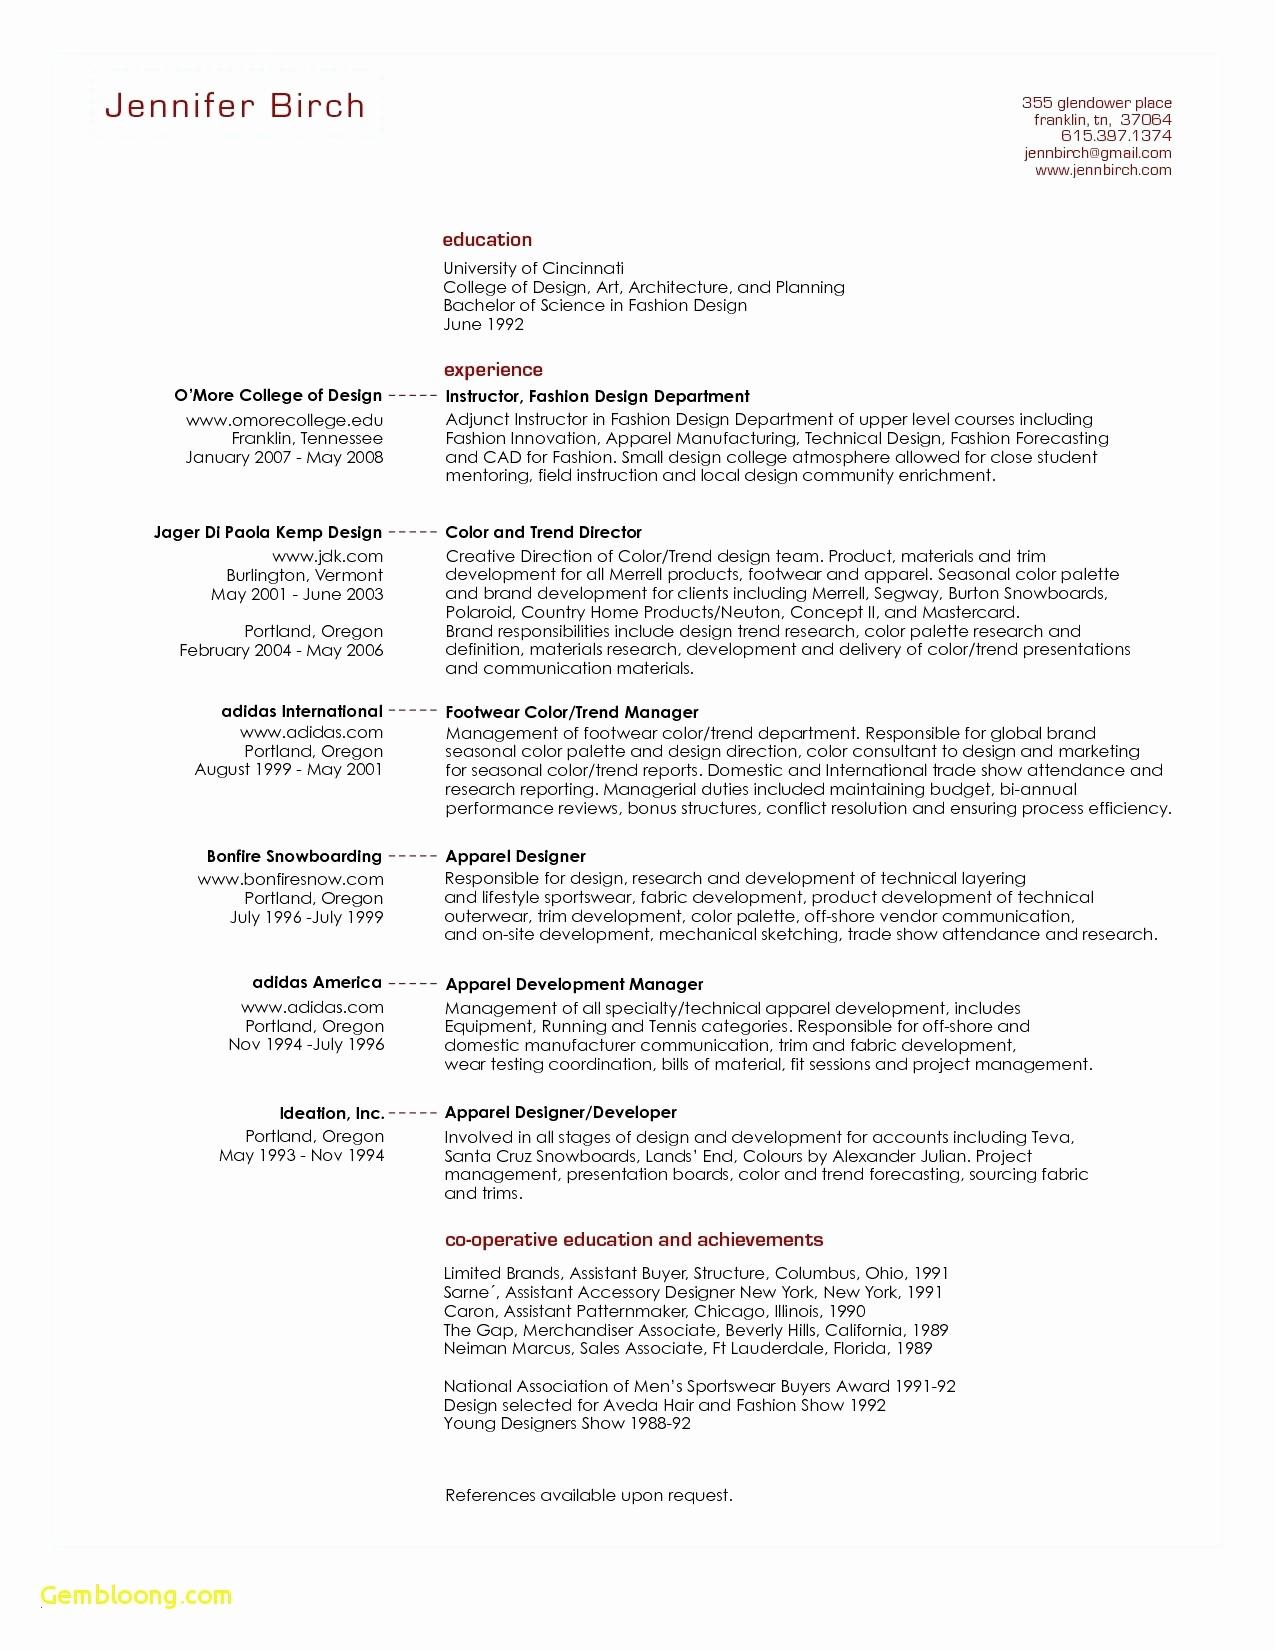 Sales Manager Resume Examples - Project Coordinator Resume Samples Luxury Sales Resume Example